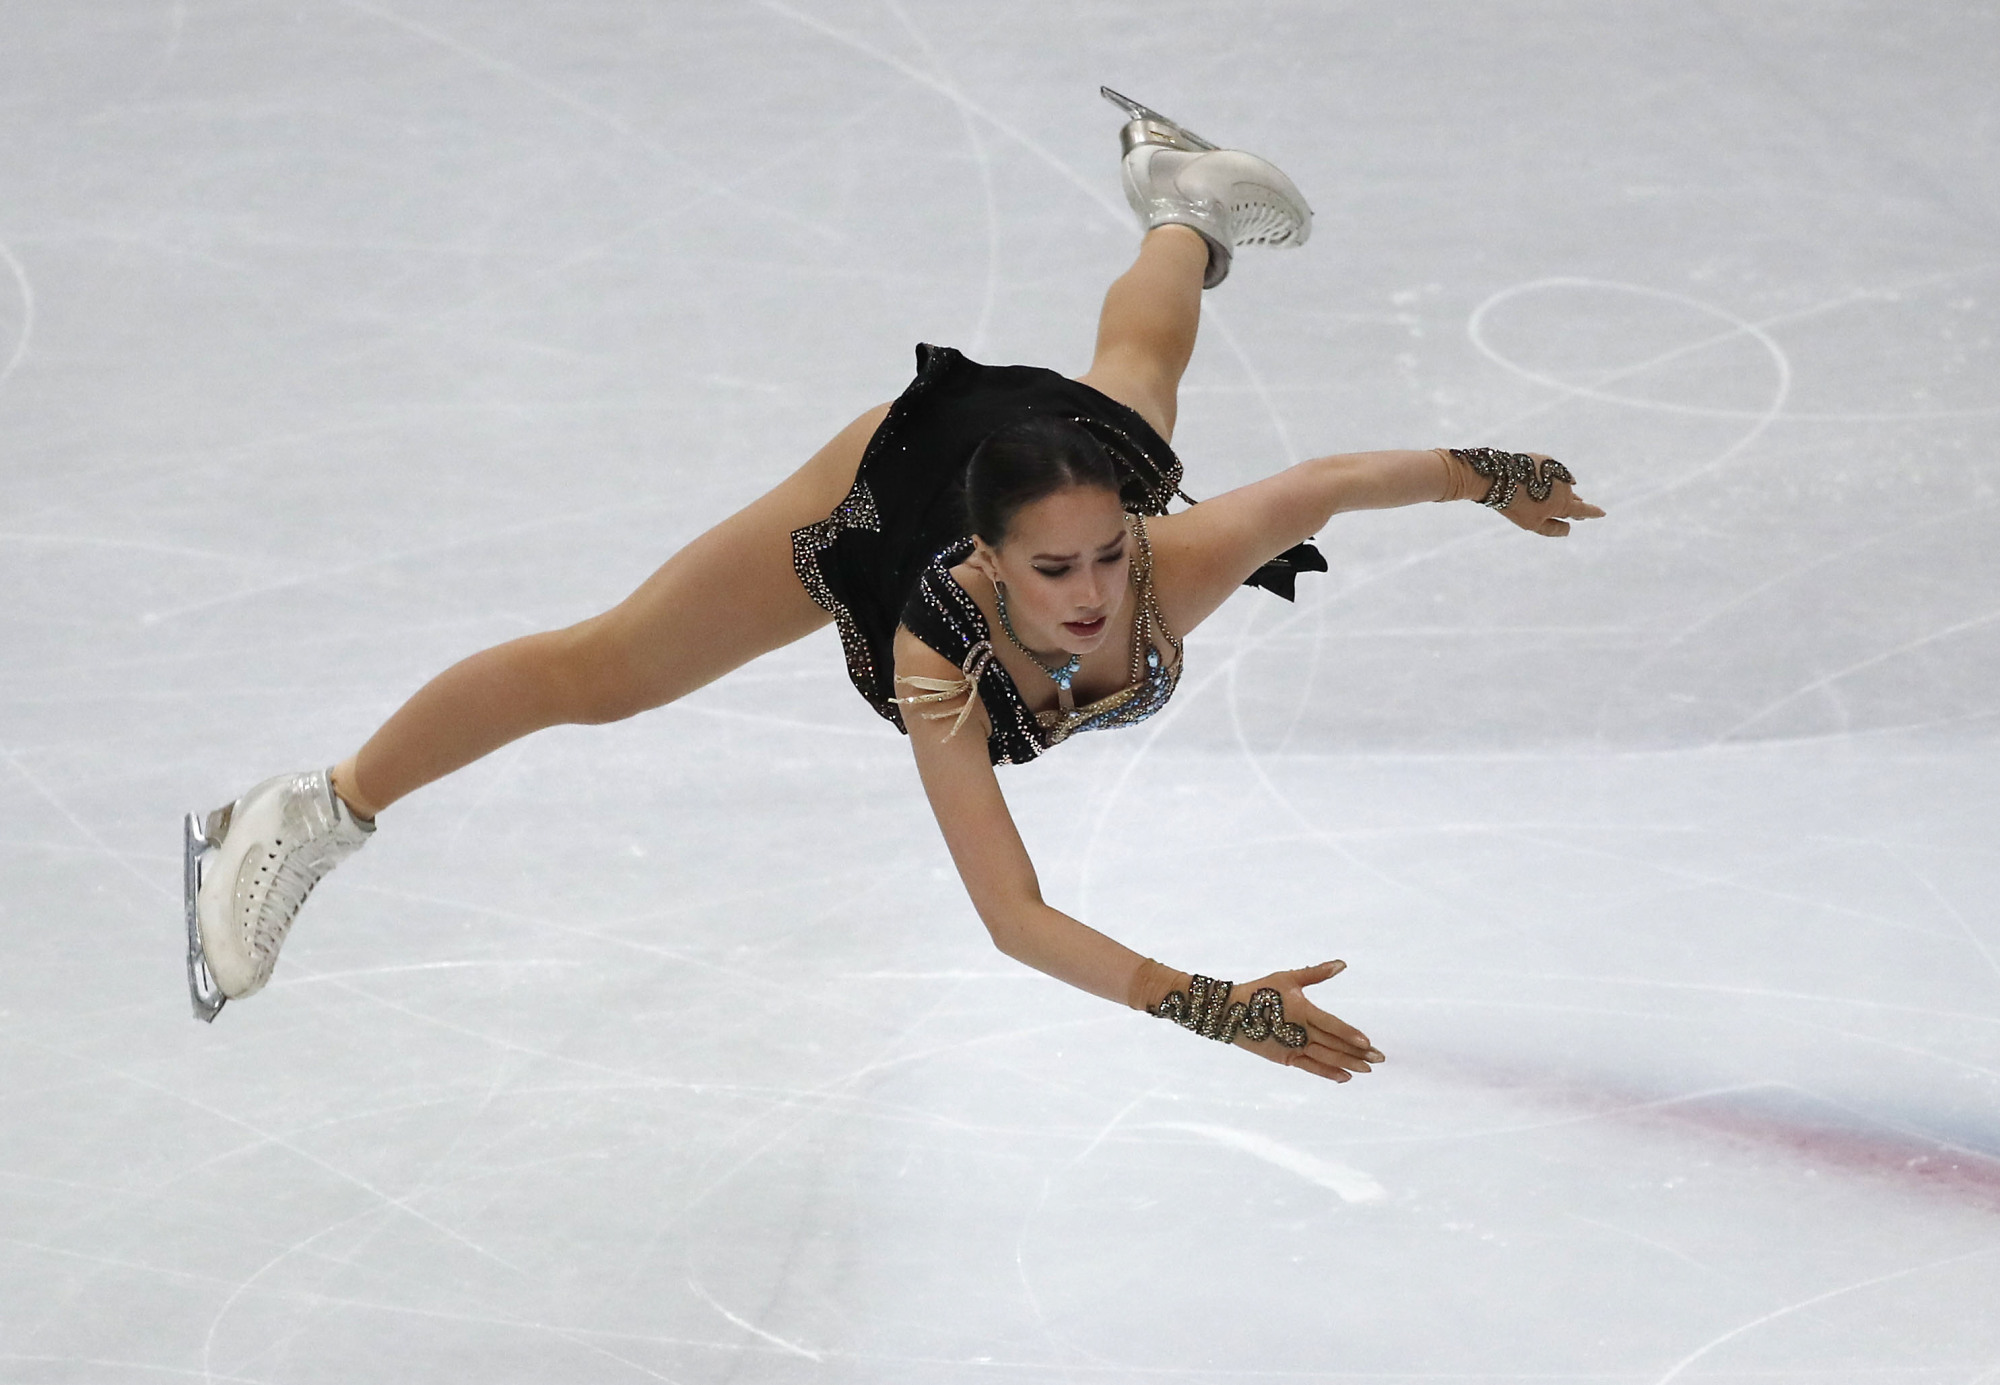 Reigning Olympic and world champion Alina Zagitova announced suddenly on Friday that she will not compete anymore this season. | AP